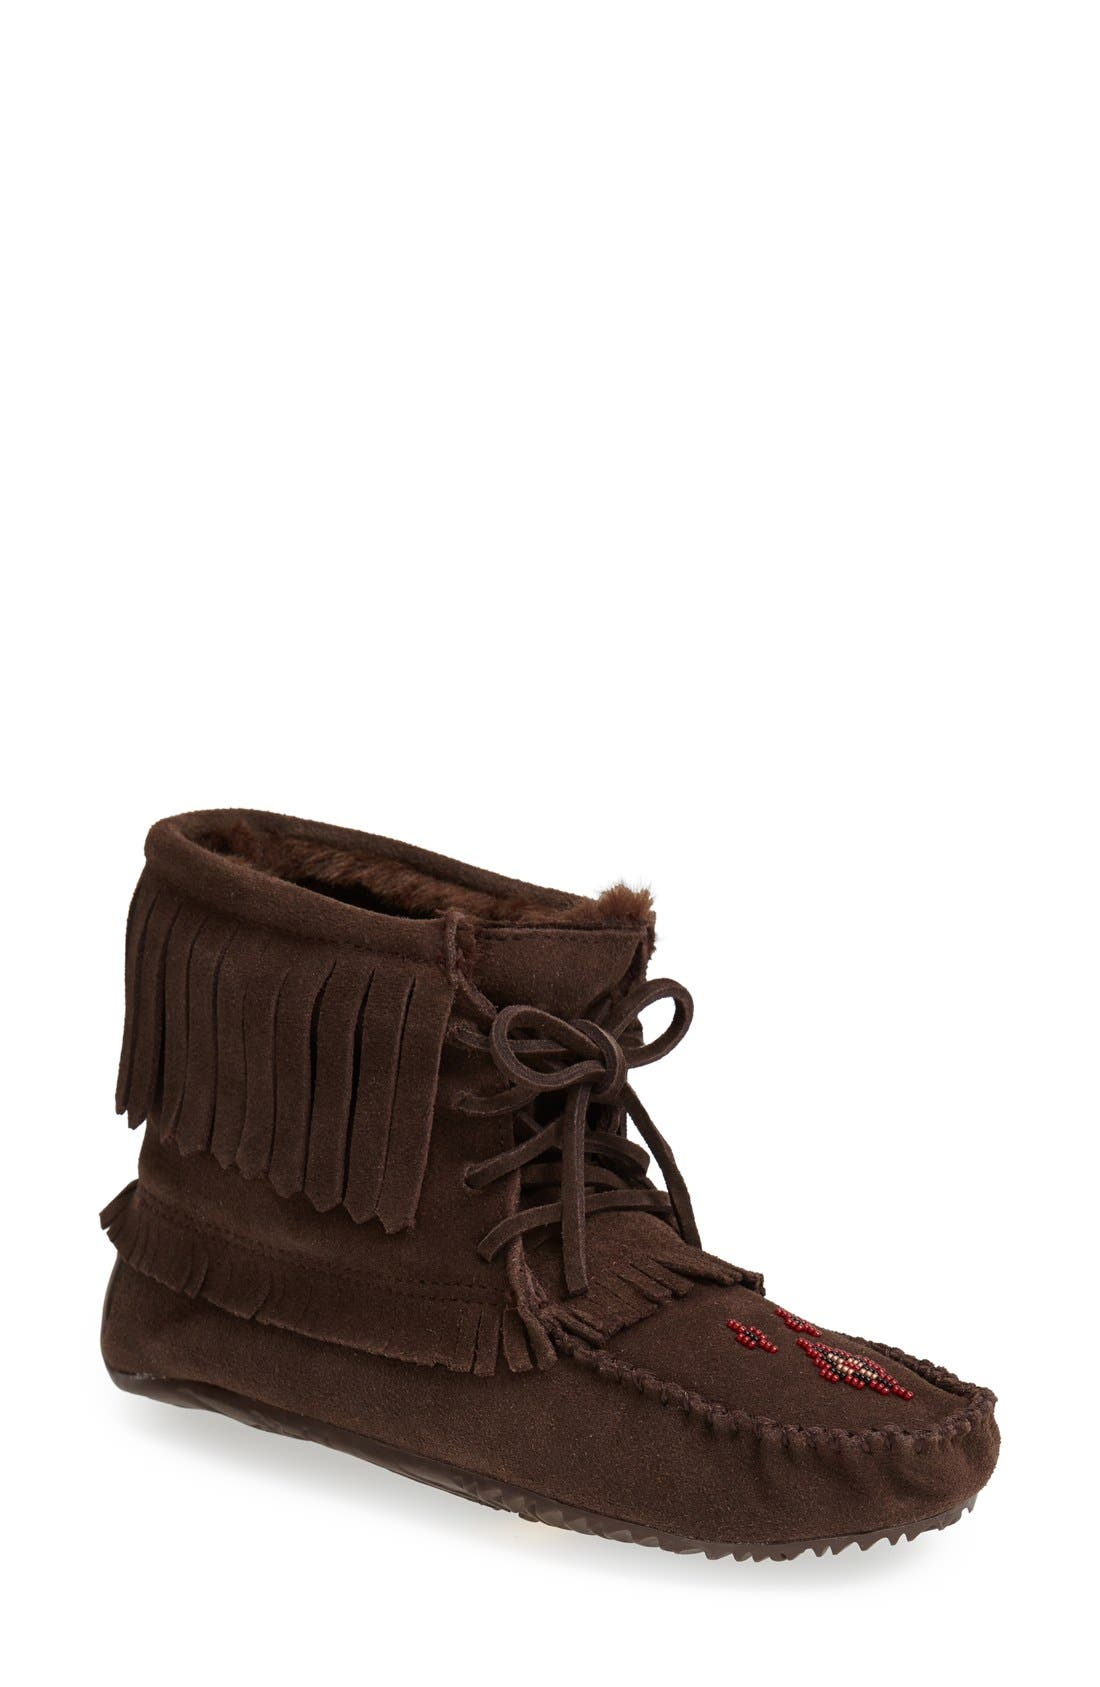 'Harvester' Moccasin,                             Main thumbnail 1, color,                             Chocolate